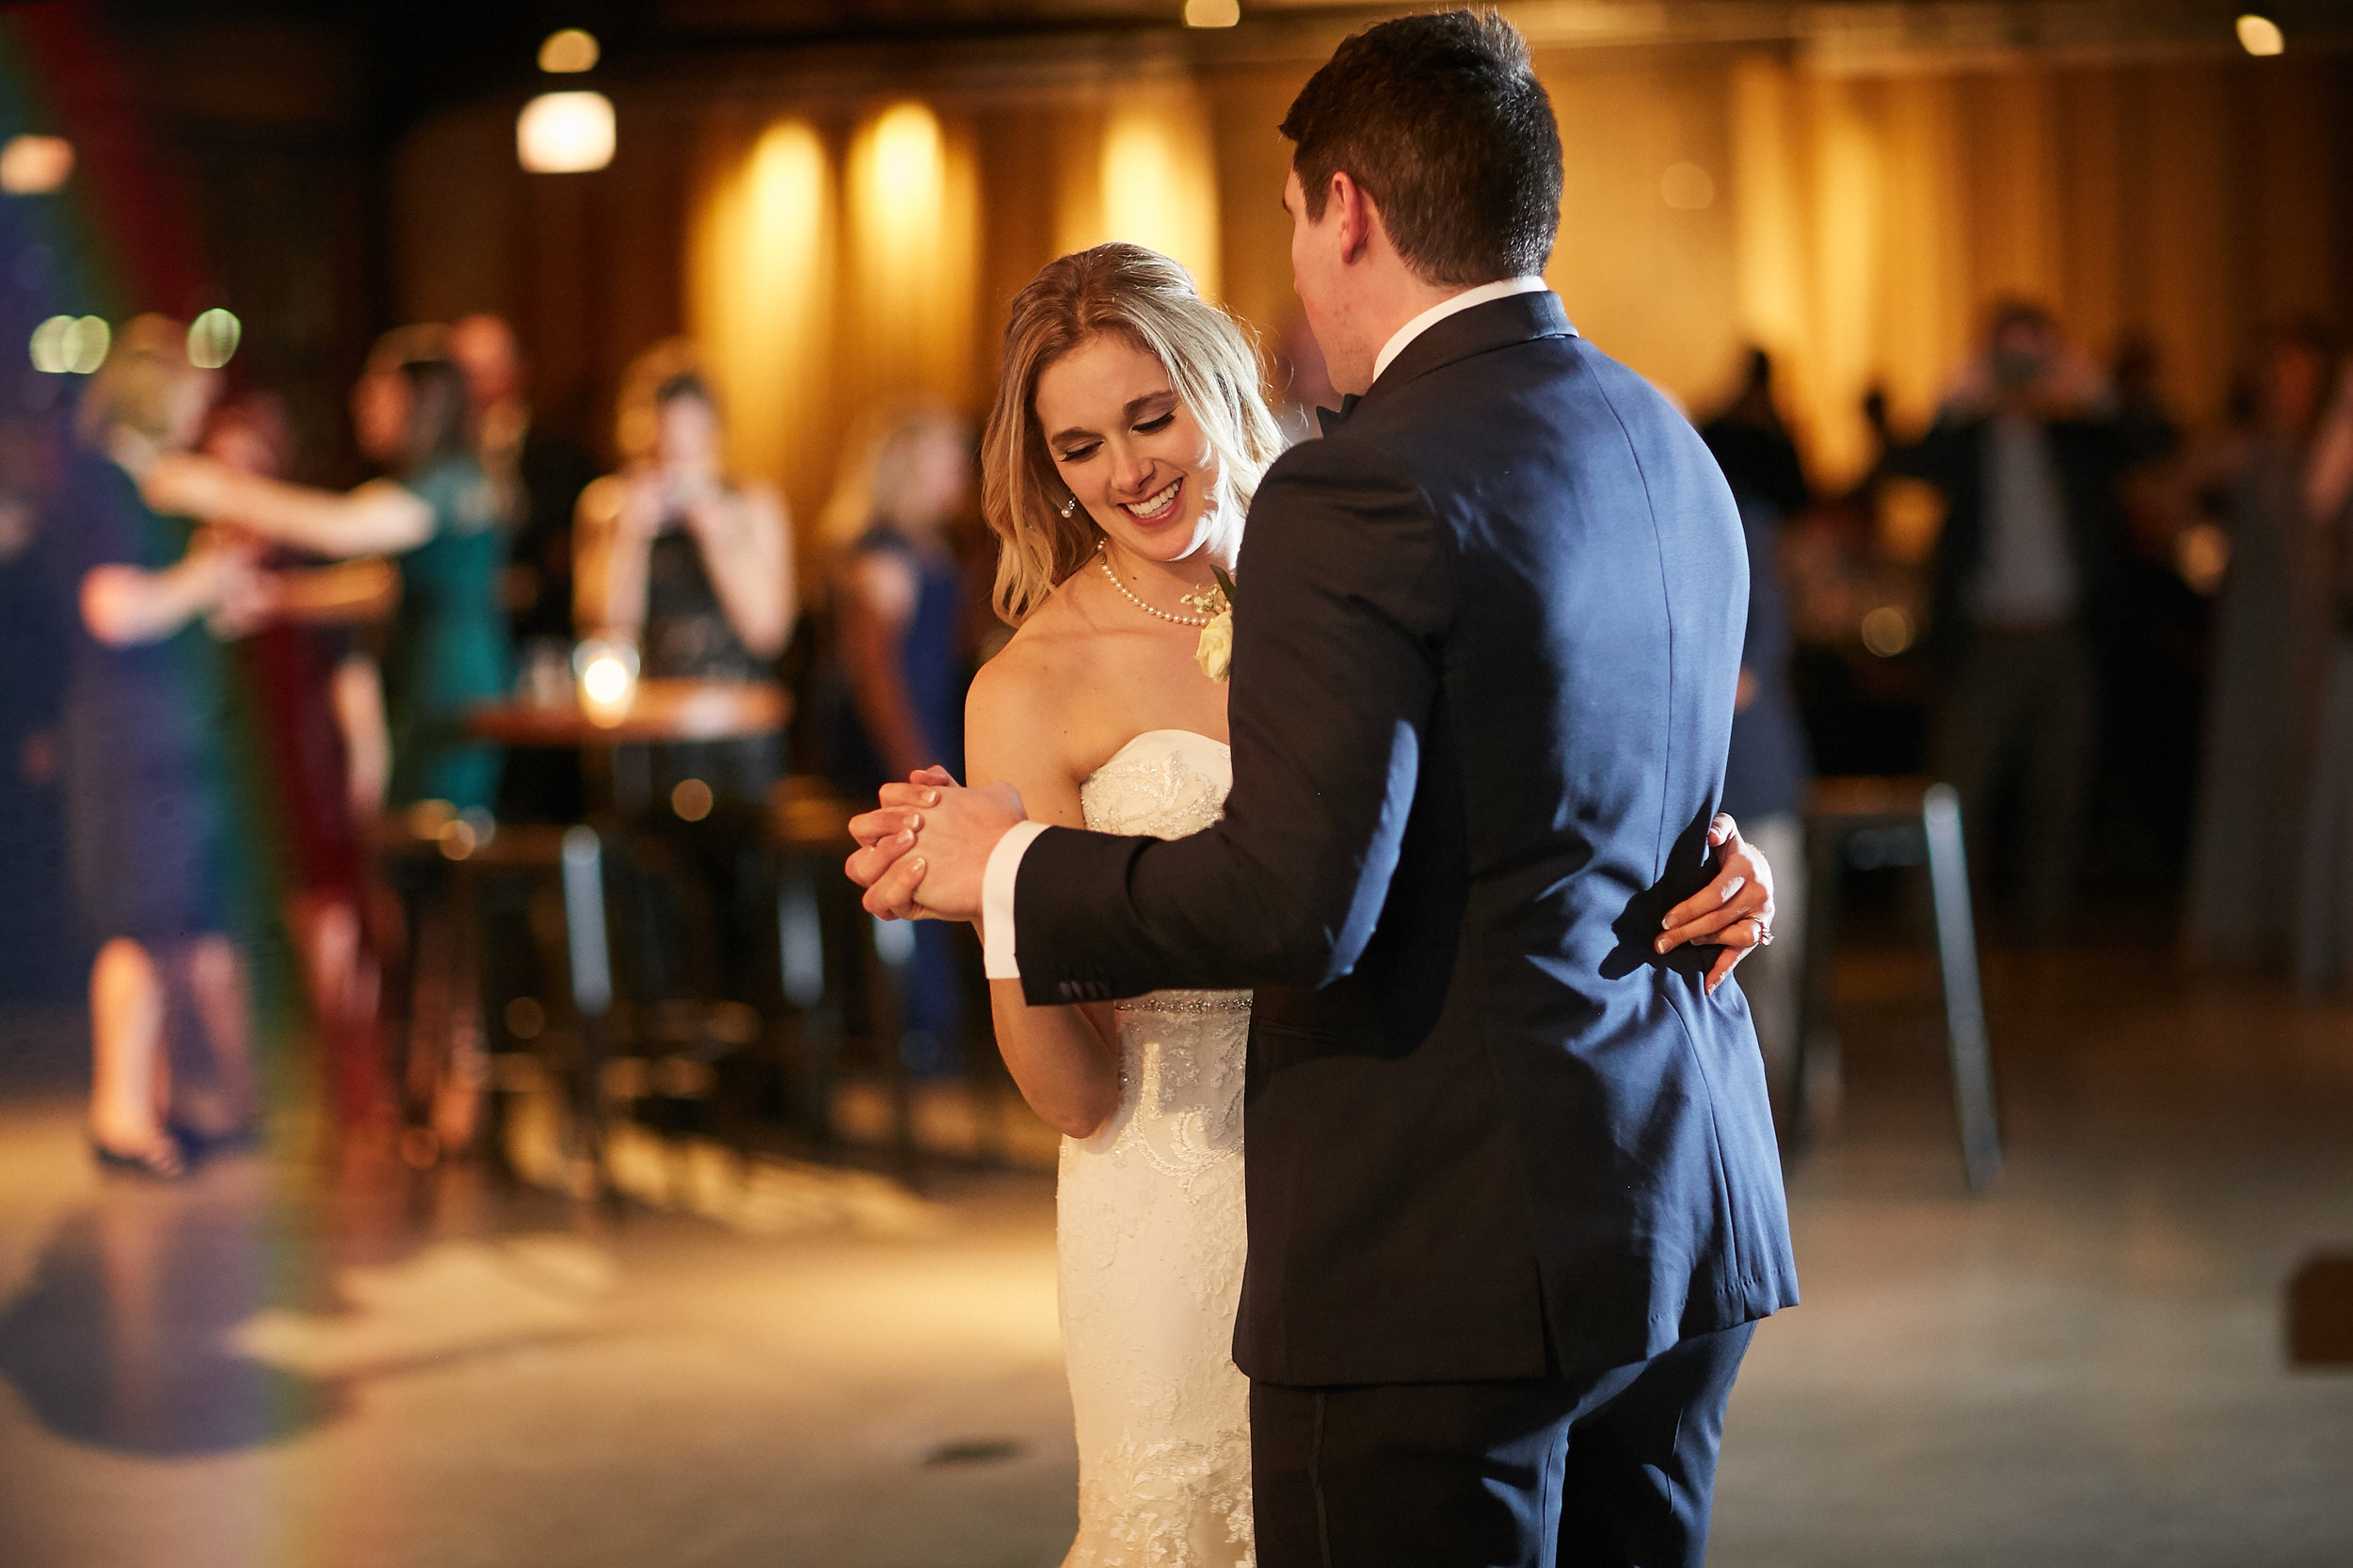 bride groom first dance wedding day married marriage reception